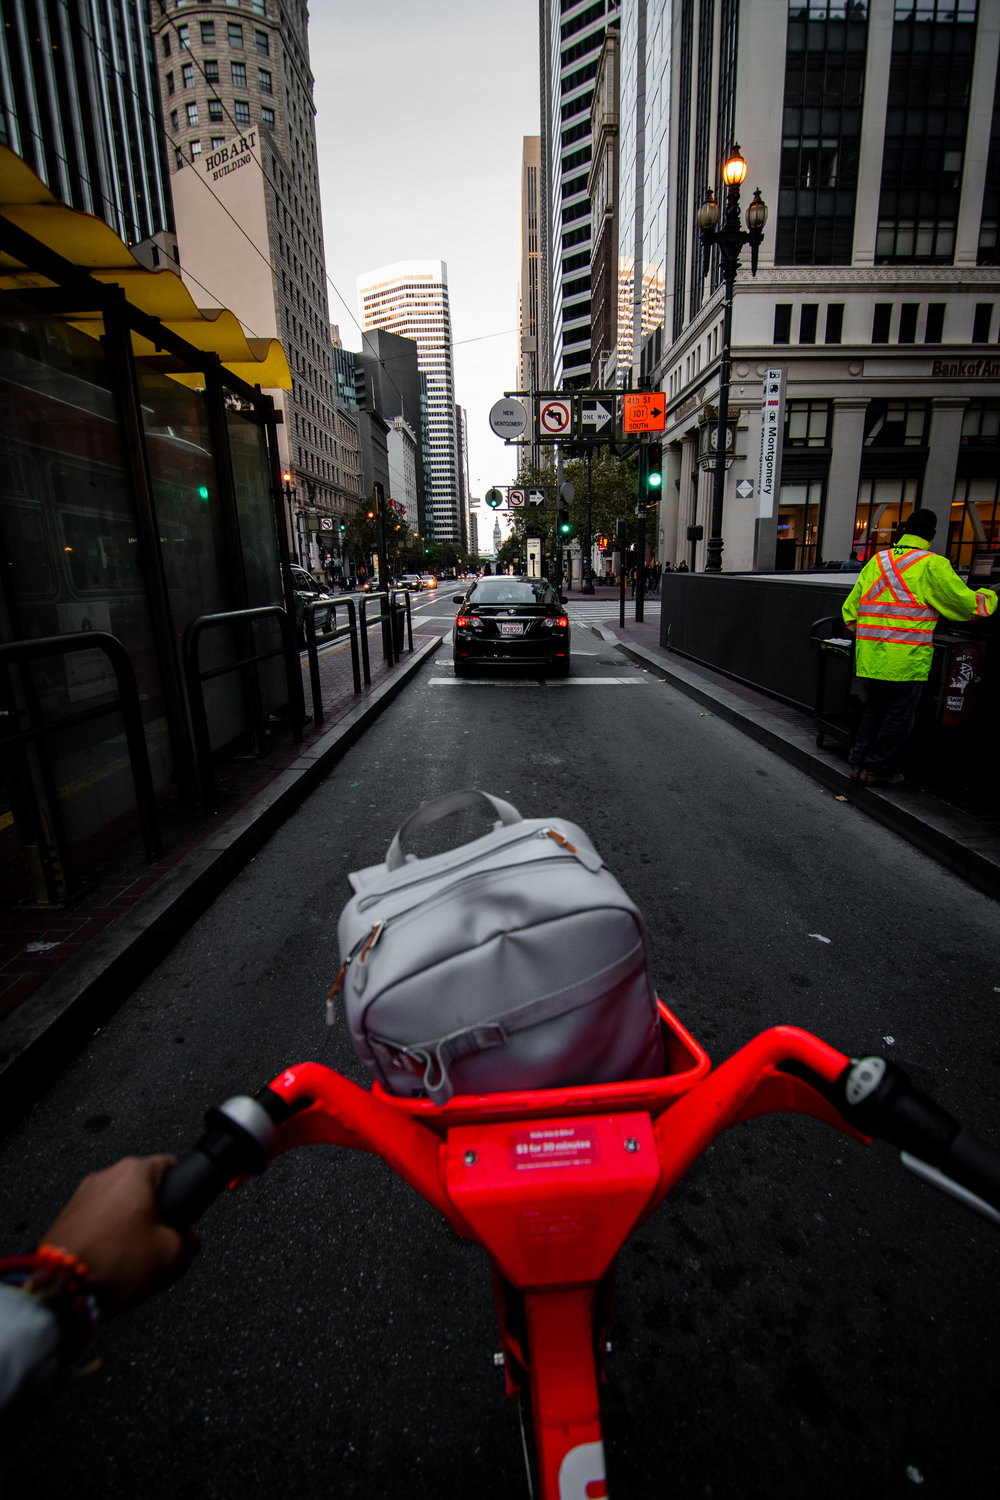 JUMP bikes are a most if you're in the city! Makes getting around so much easier..